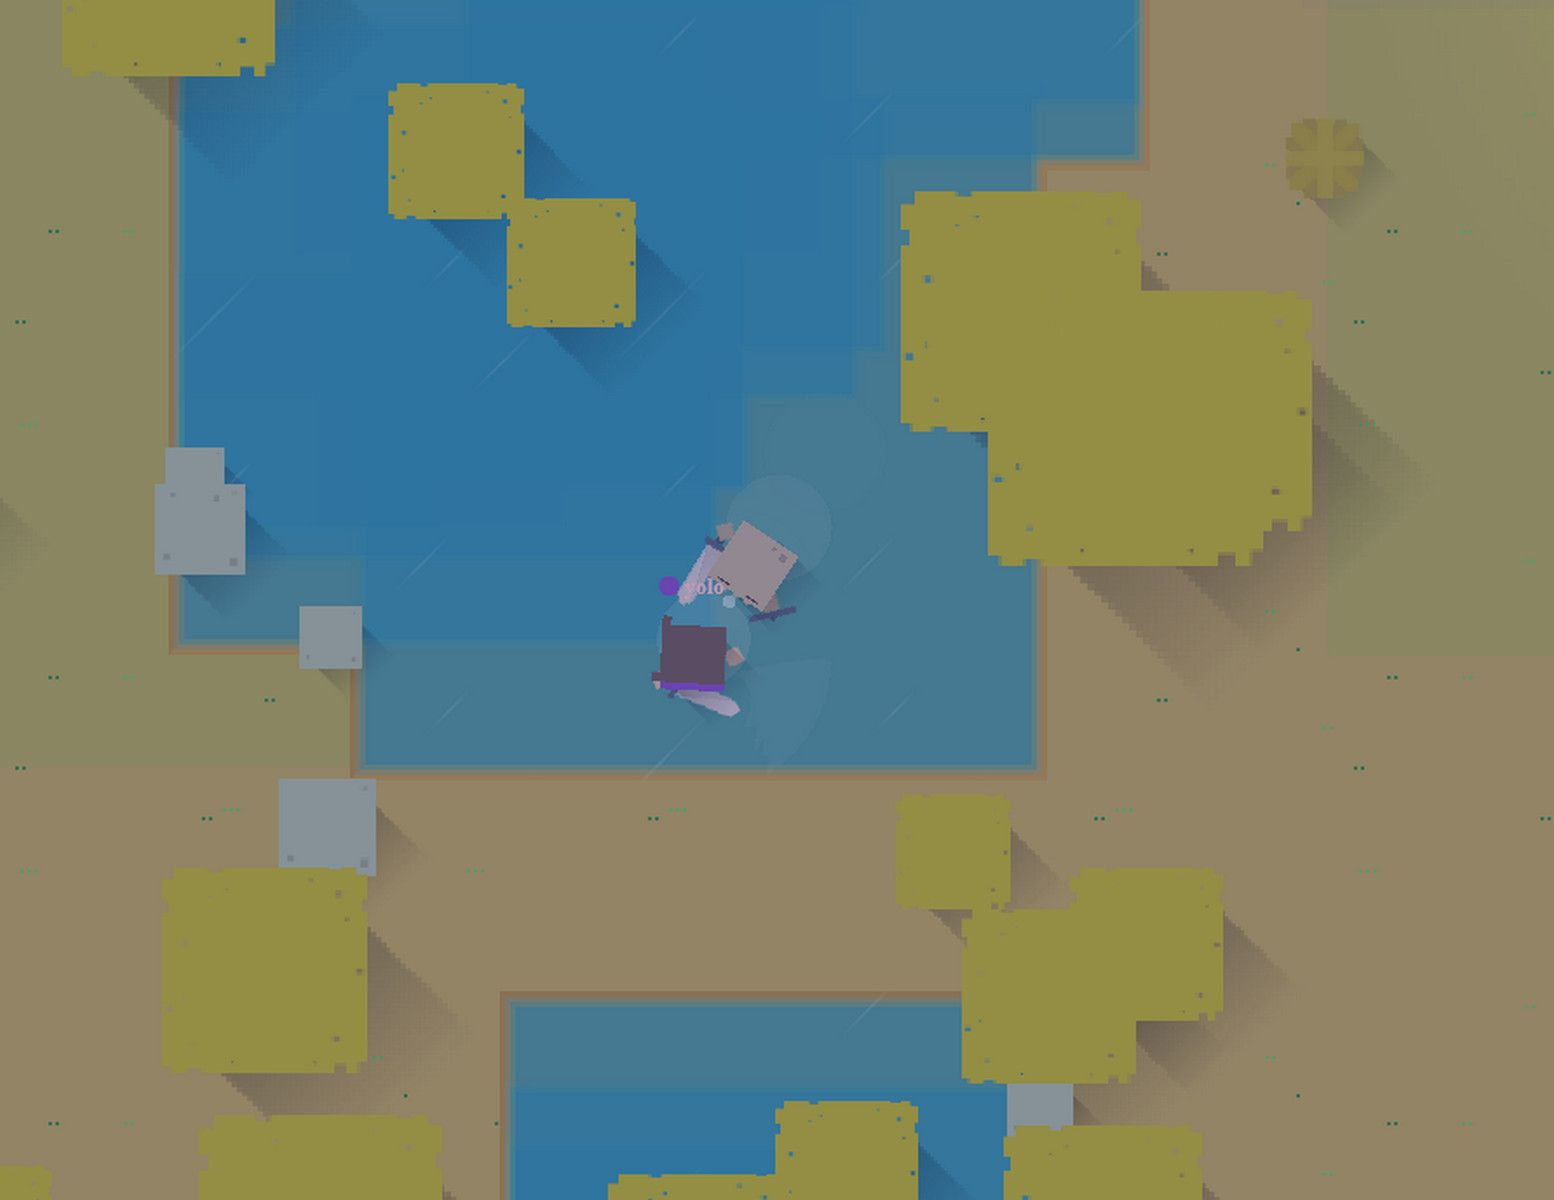 Games Like Blocker is a sword wielding multiplayer game. A hack and slash  rpg. Beat your enemies, collect coins and build your army with better  weapons.